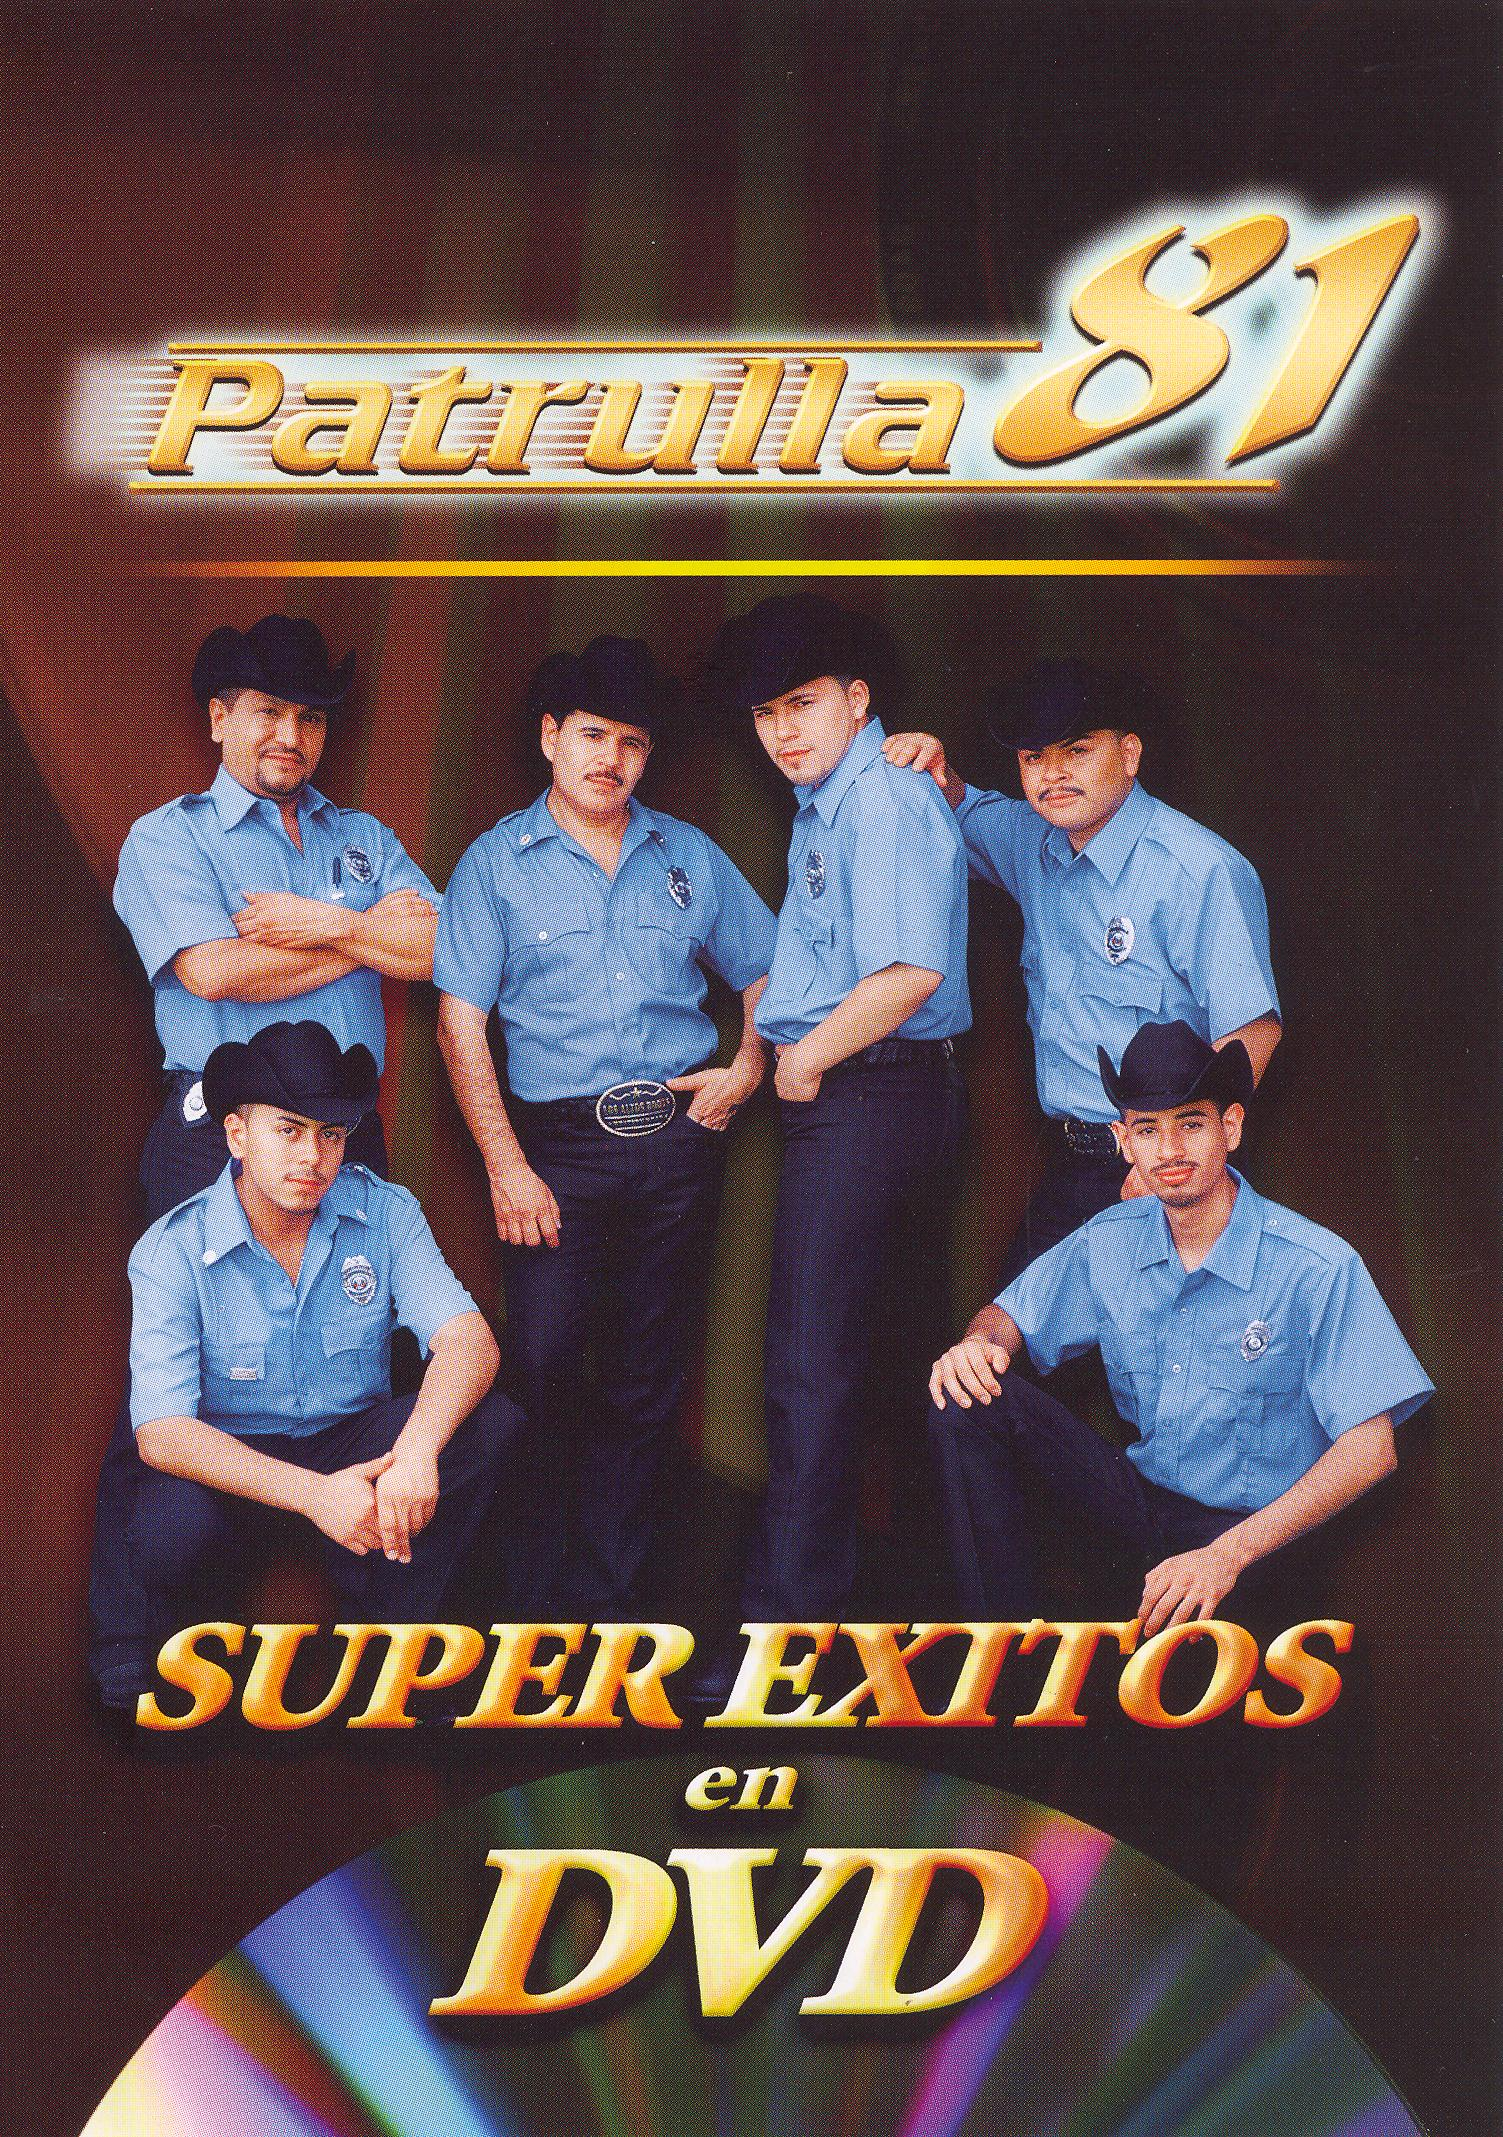 Patrulla 81: Super Exitos en DVD